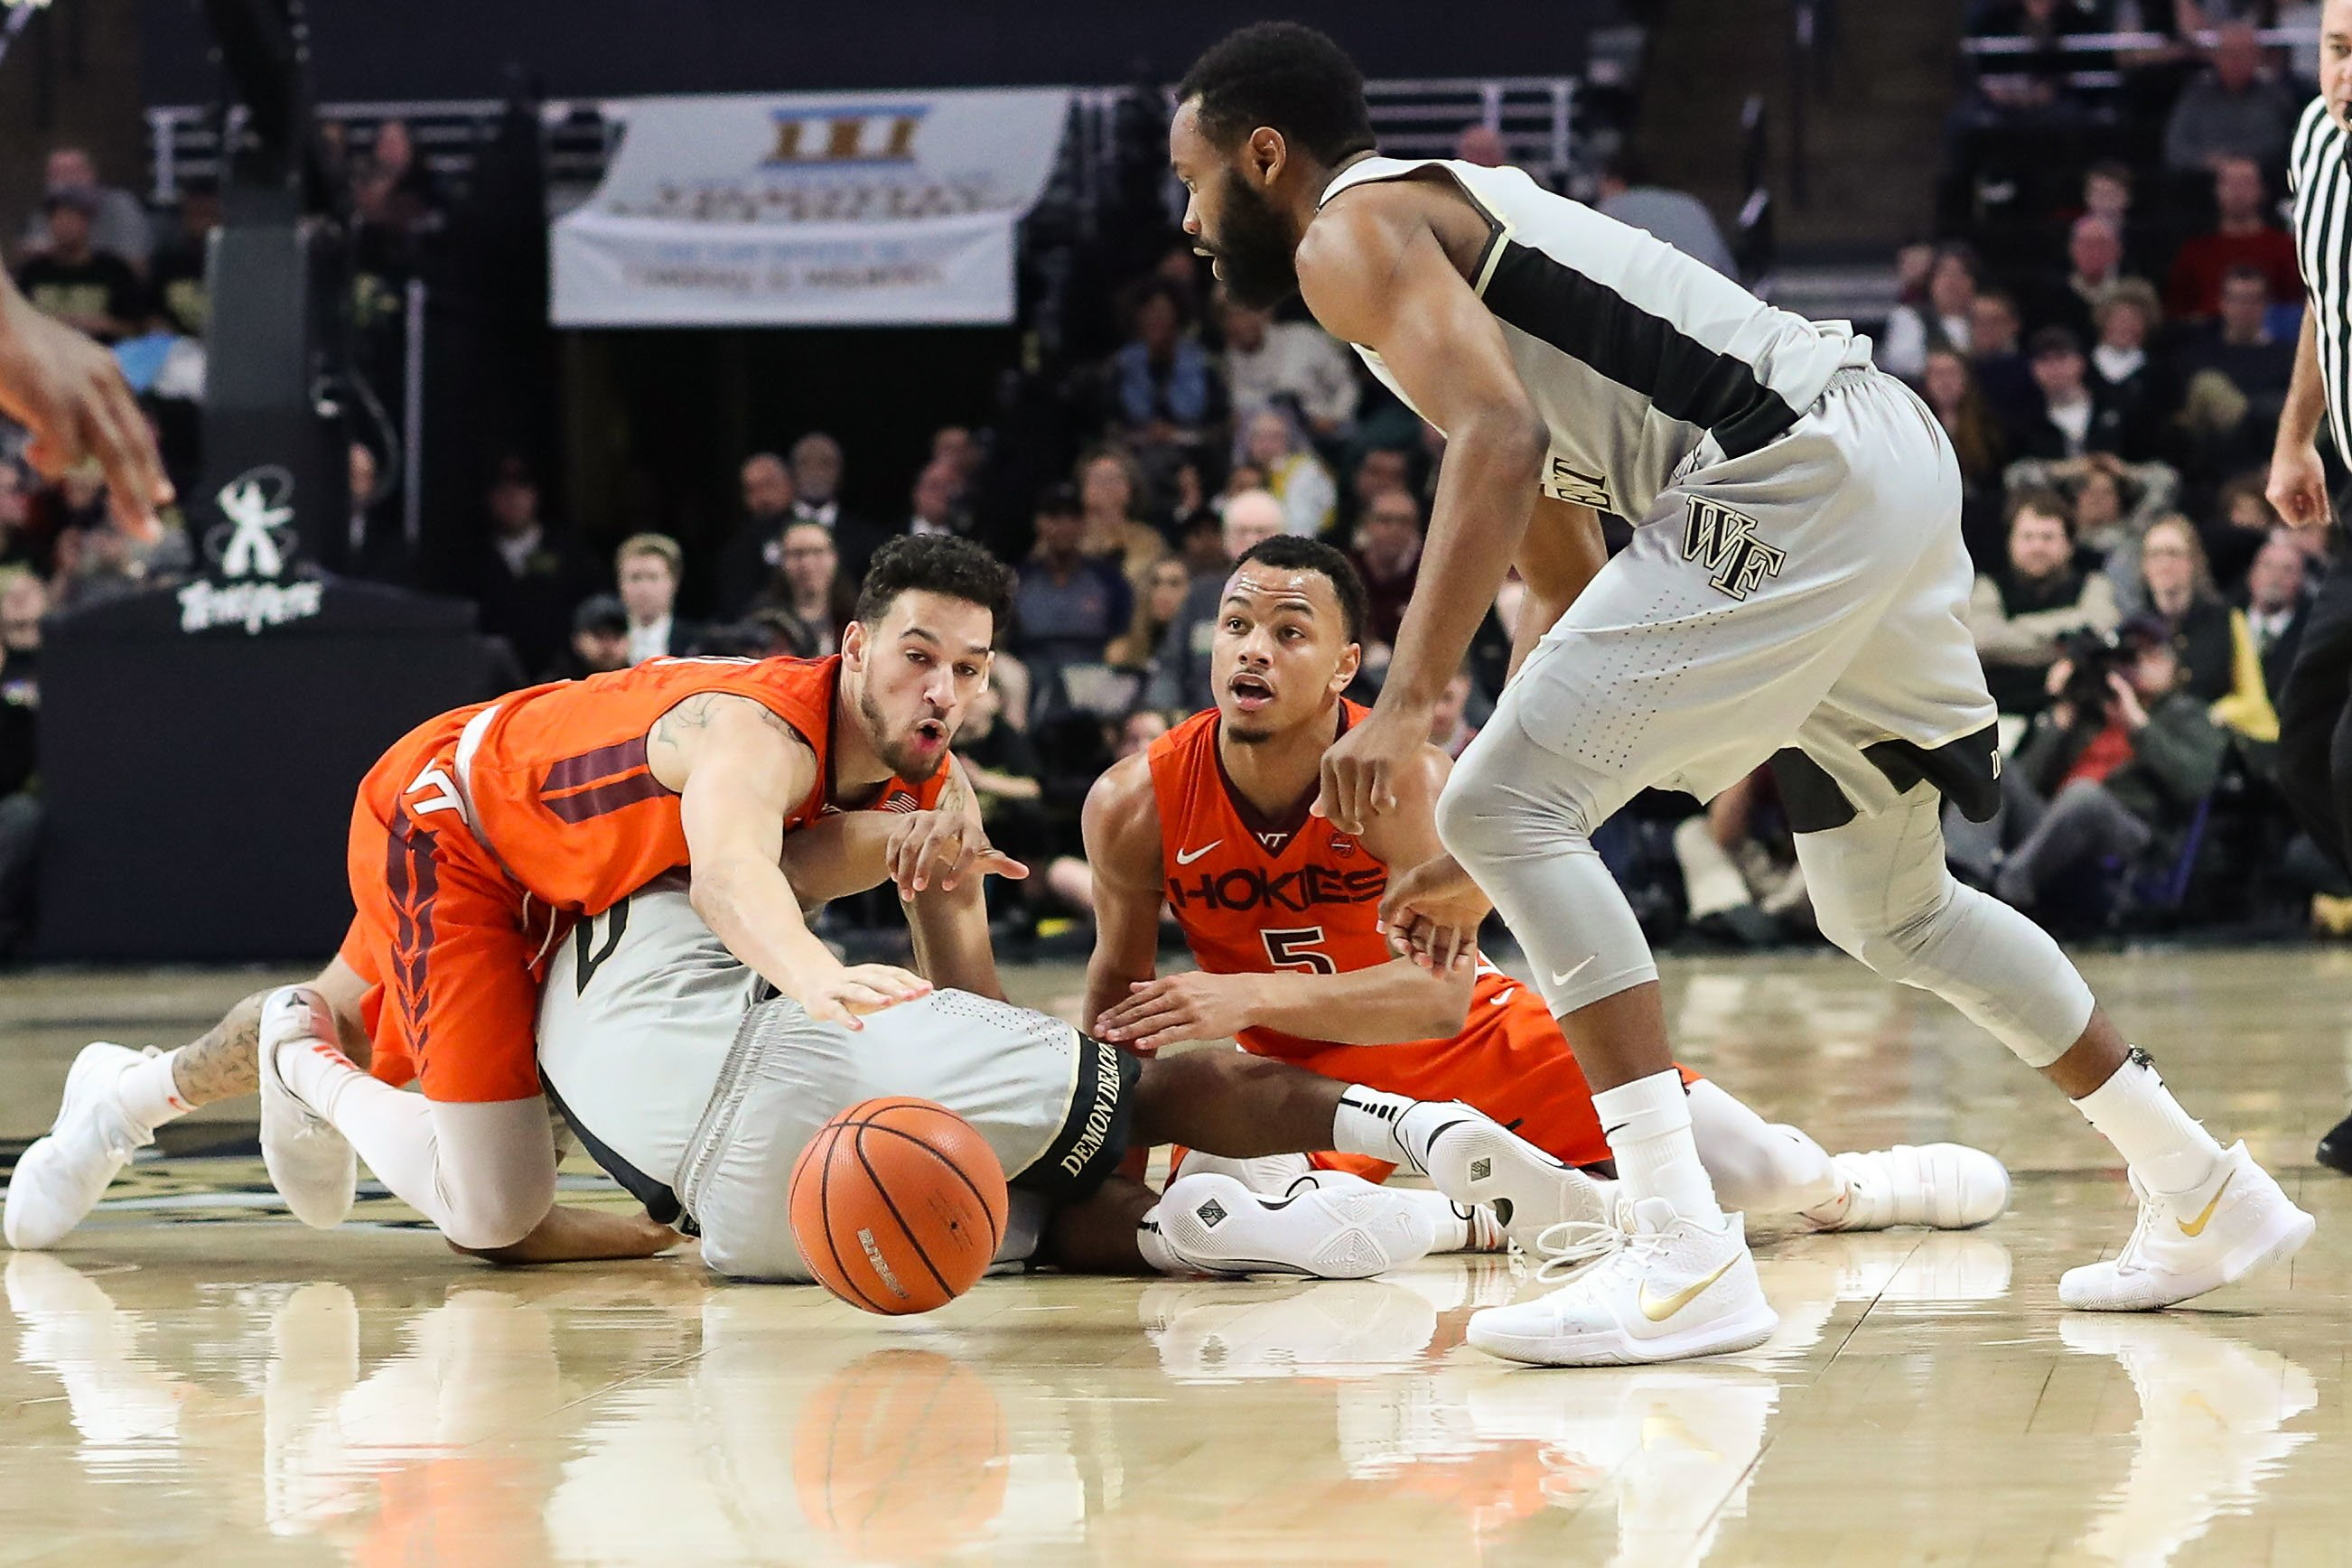 Deacons slide continues with loss to Virginia Tech